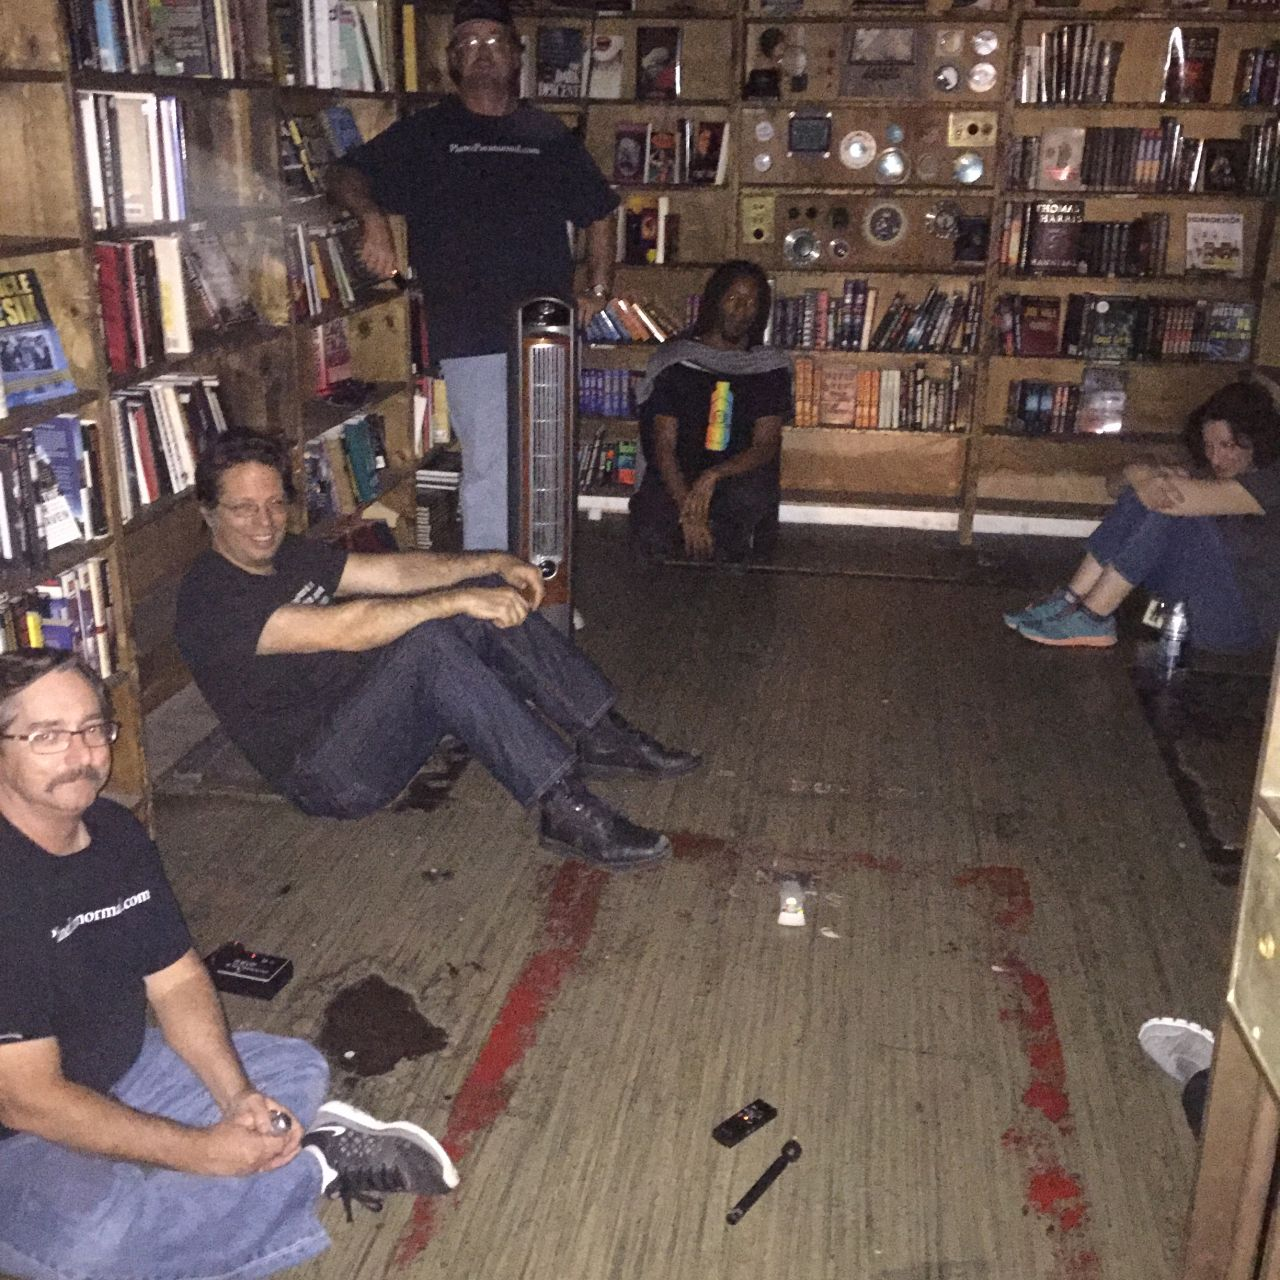 Asking questions, listening - and busting each other's chops - where else but the horror vault?